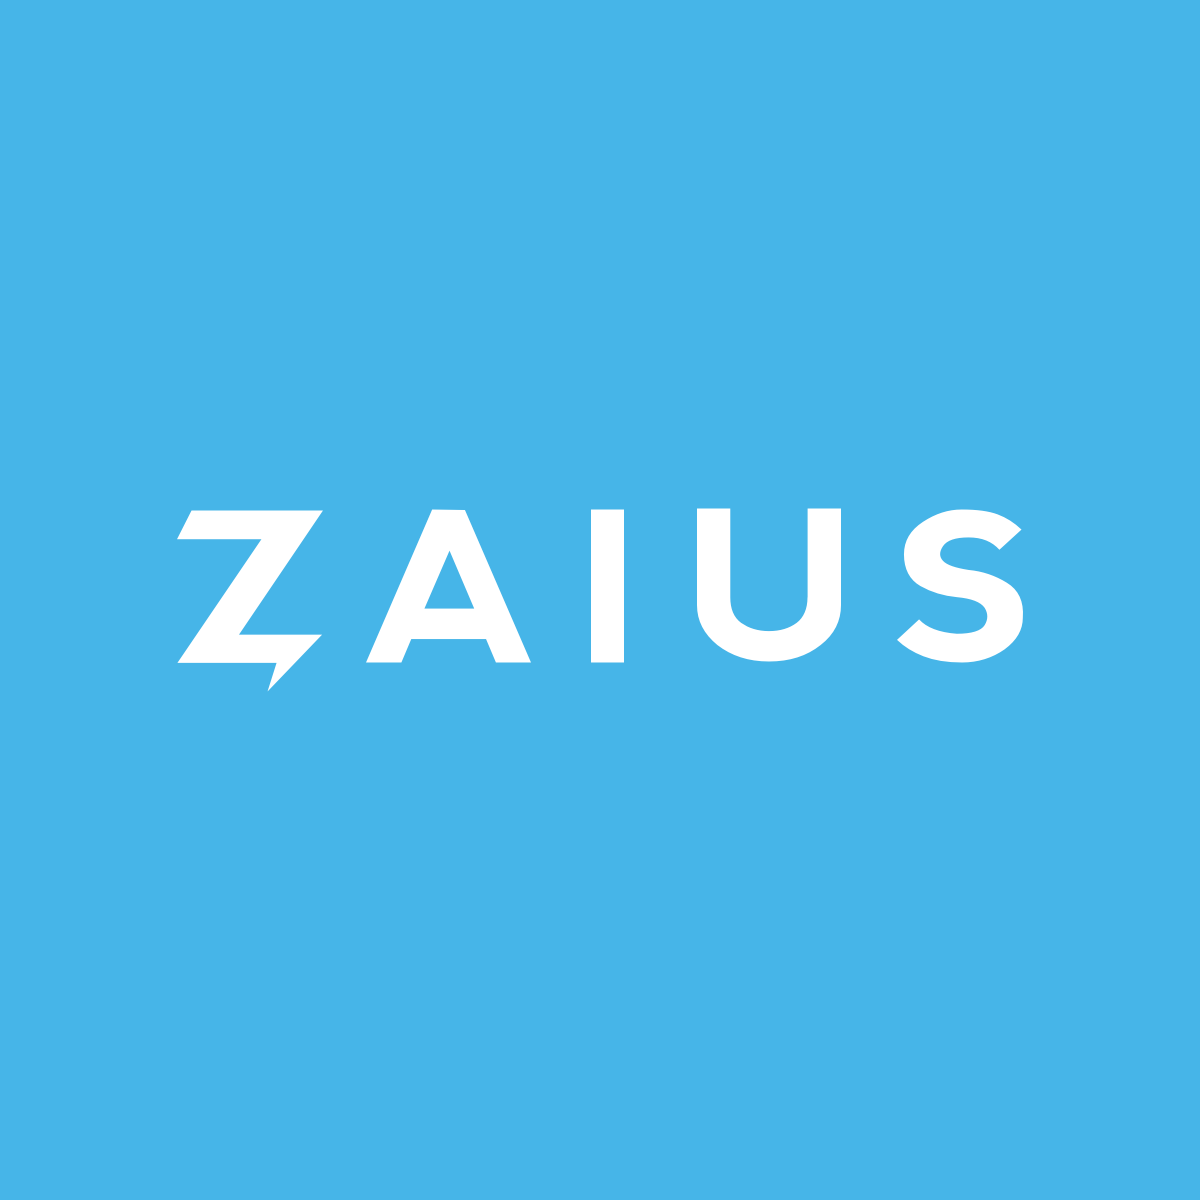 Hire Shopify Experts to integrate Zaius Activated CDP & Insights app into a Shopify store